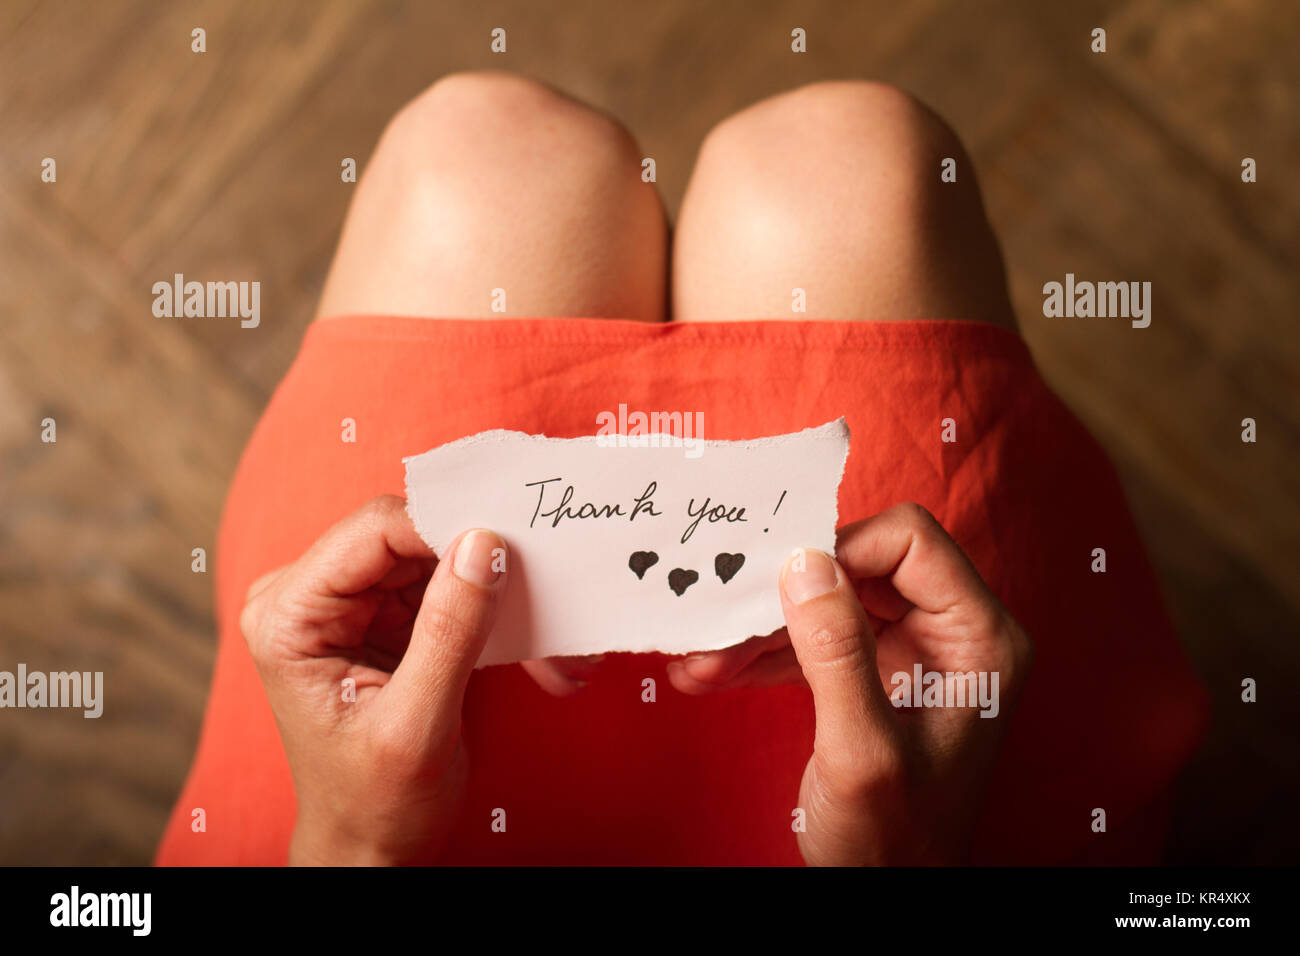 Woman holding a thank you note in her hand - Stock Image